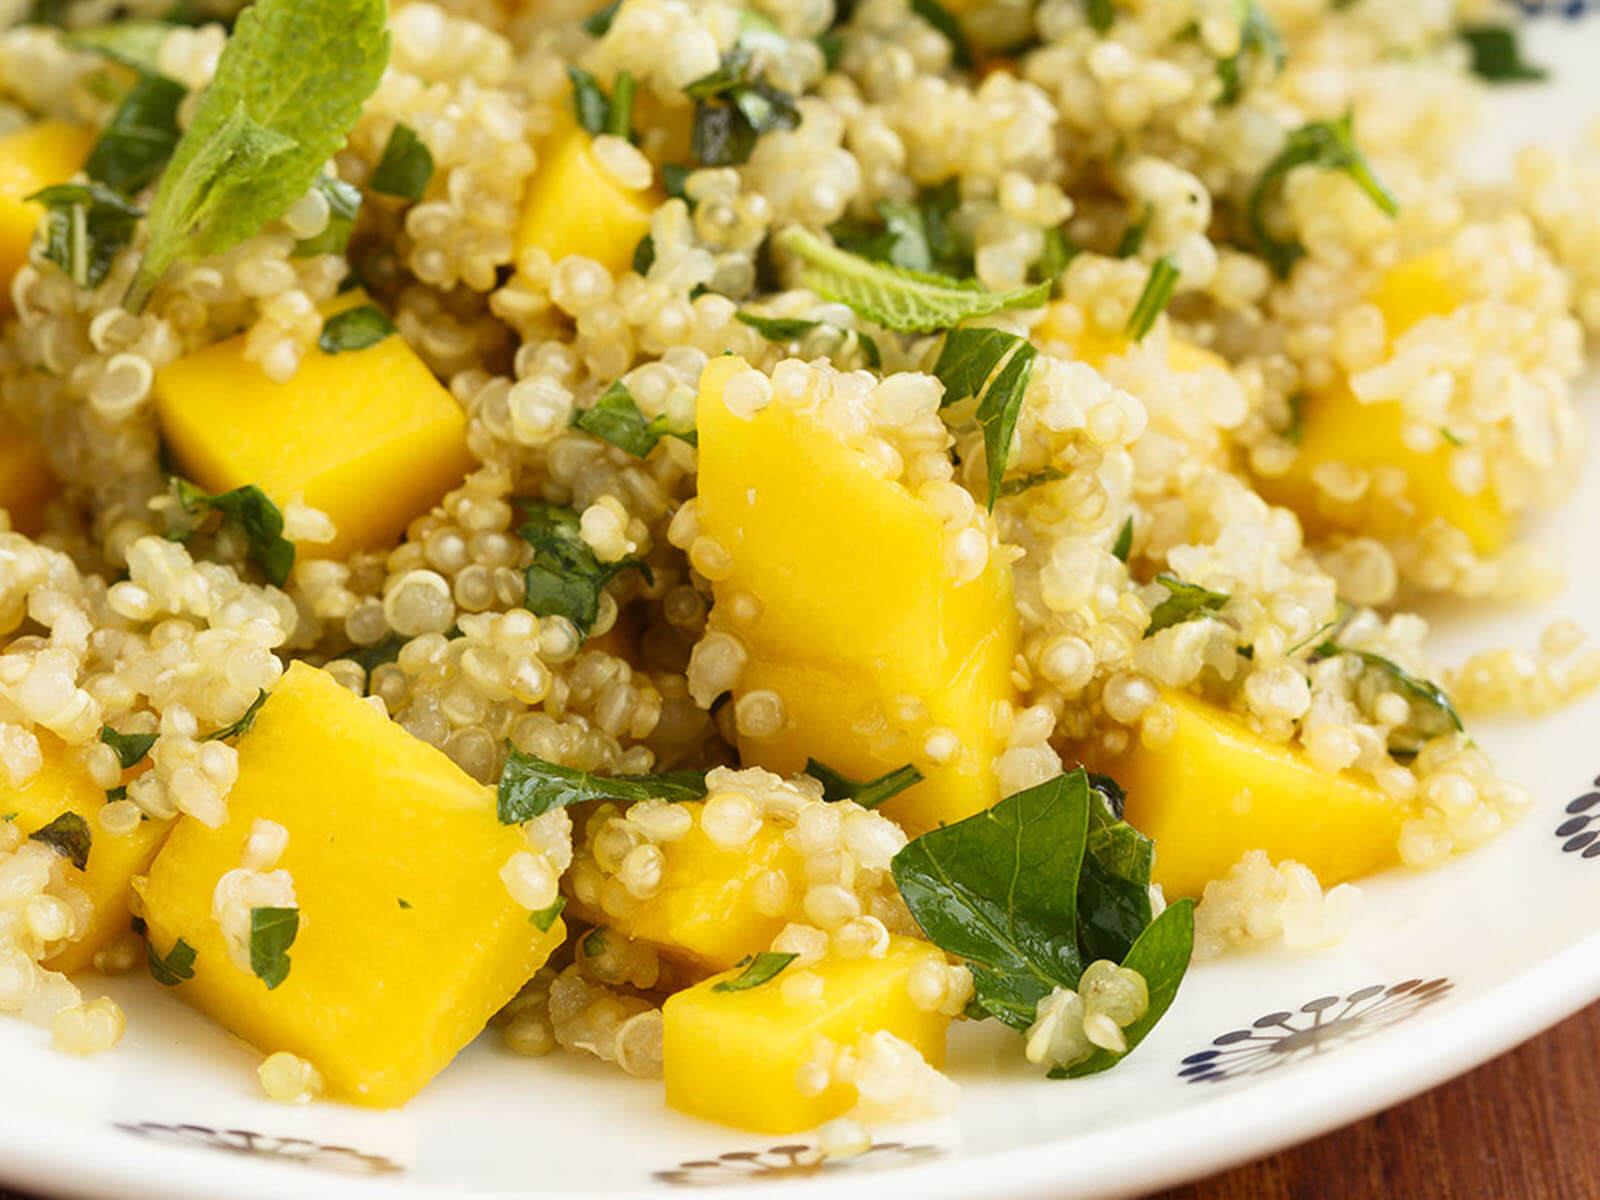 Quinoa Salad in a Mango Avocado Dressing